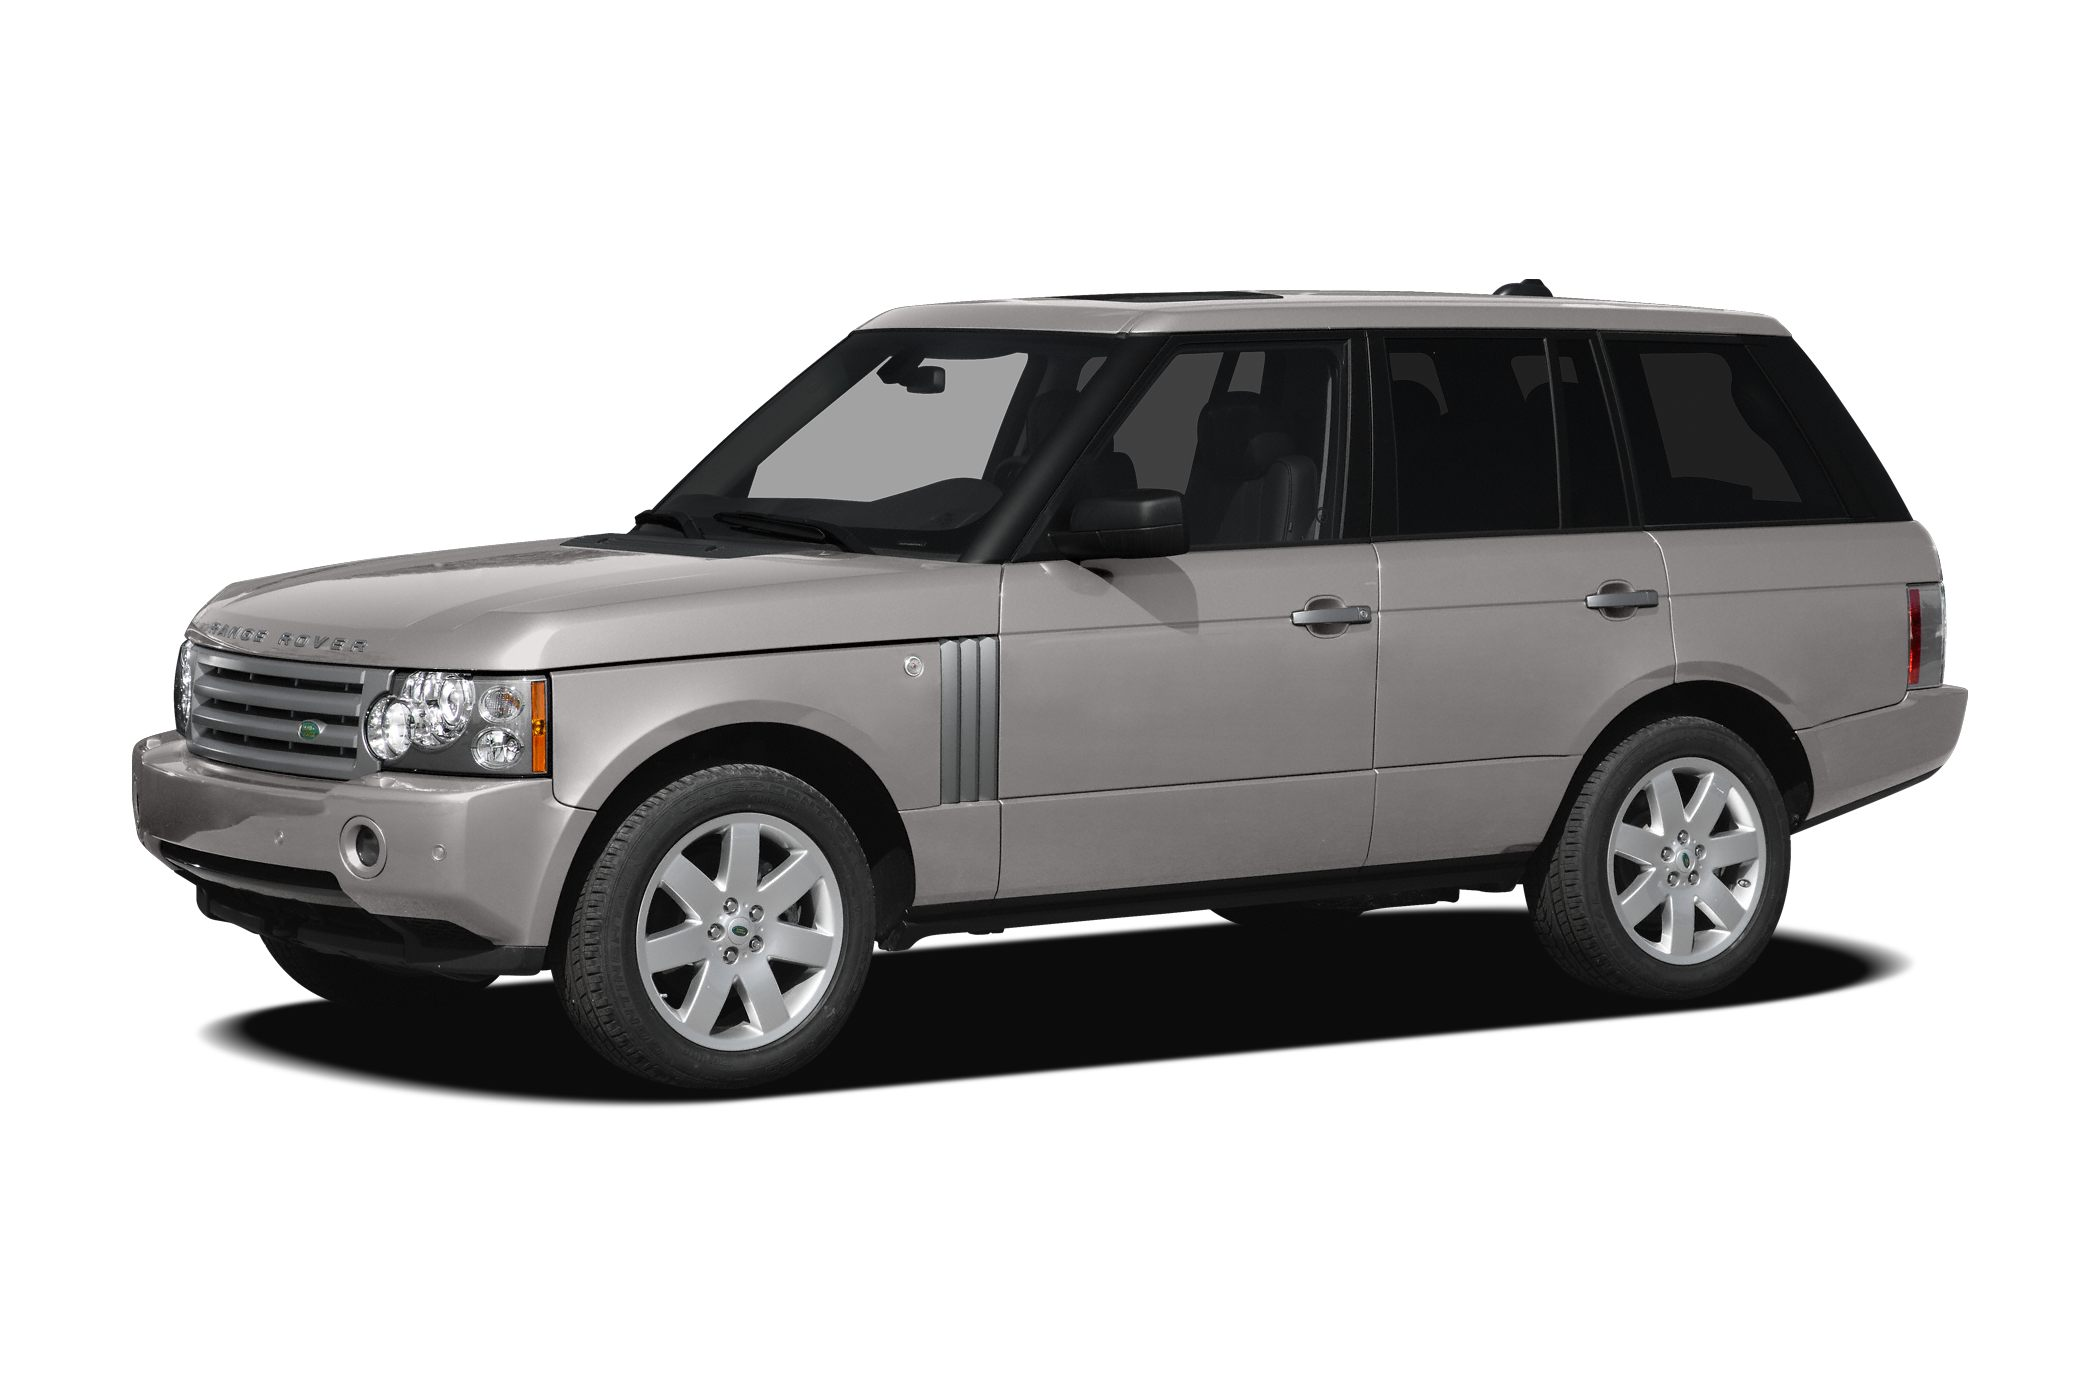 2008 Land Rover Range Rover HSE All Jim Hayes Inc used cars come with a 30day3000 mile warranty U